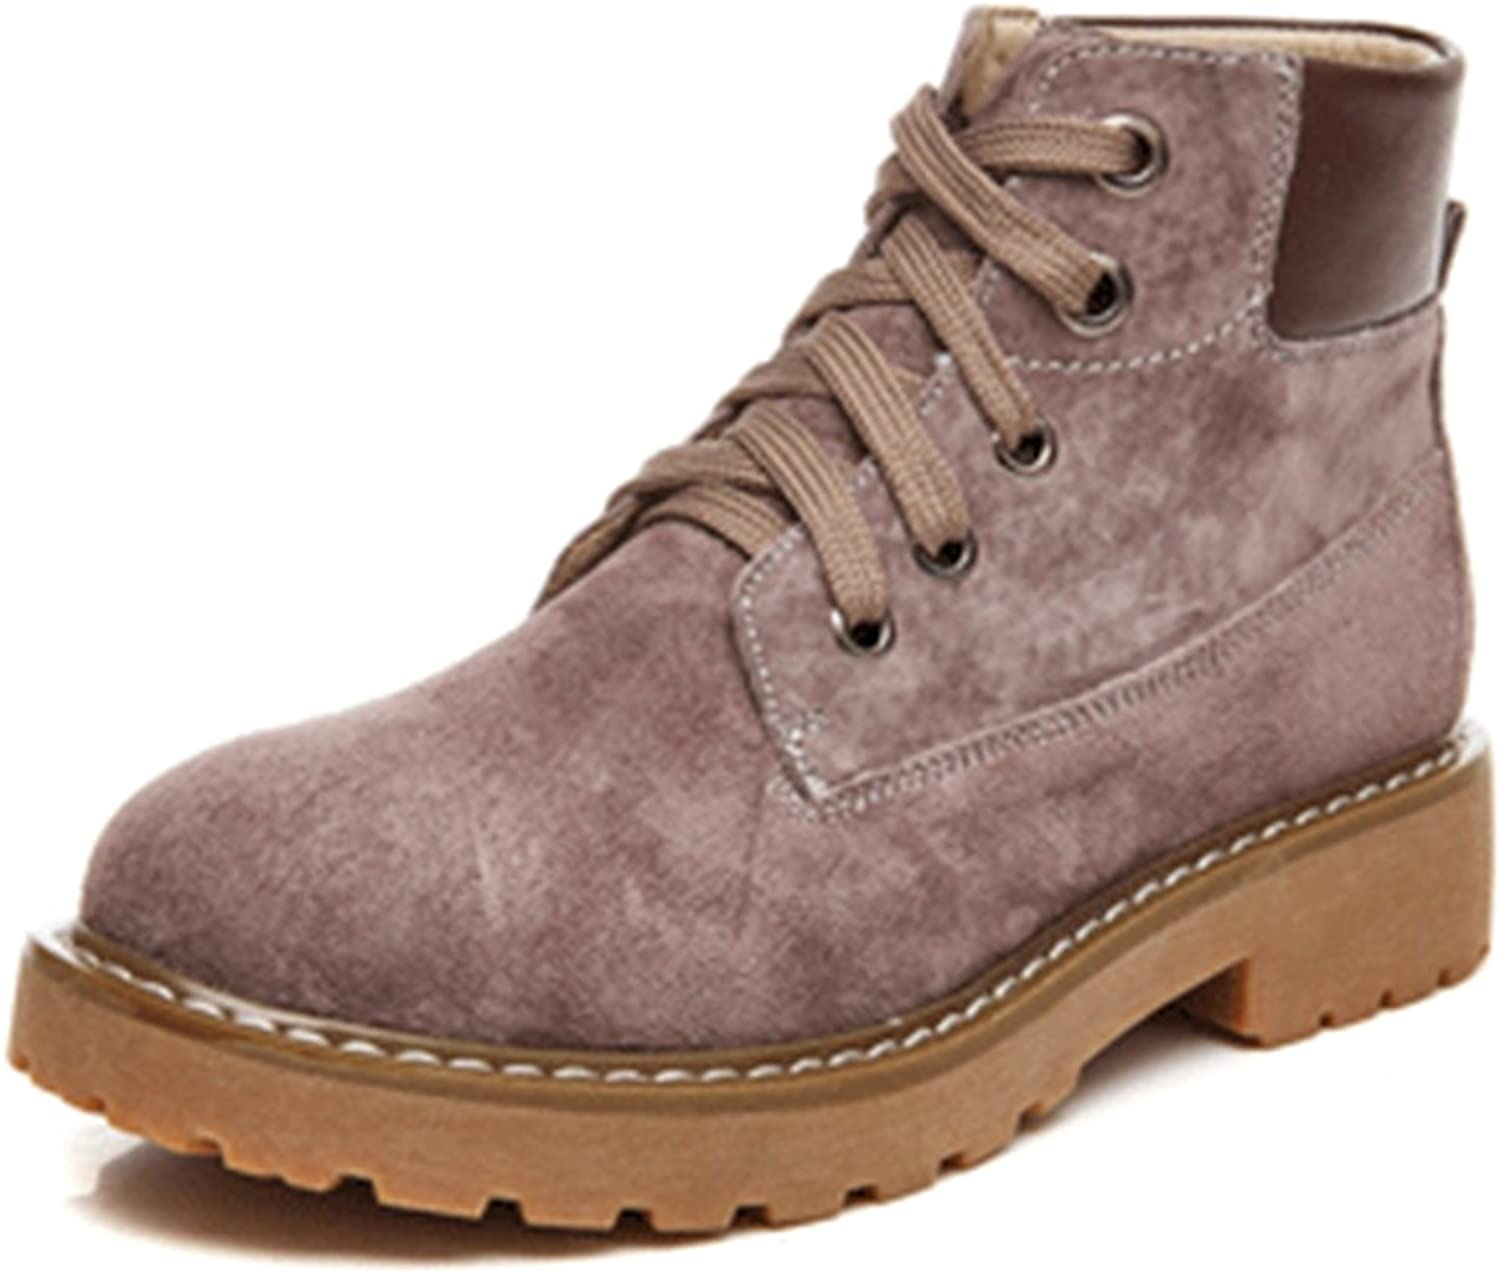 TDA Women's Lace-up Retro Casual Suede Leather Ankle Martin Boots